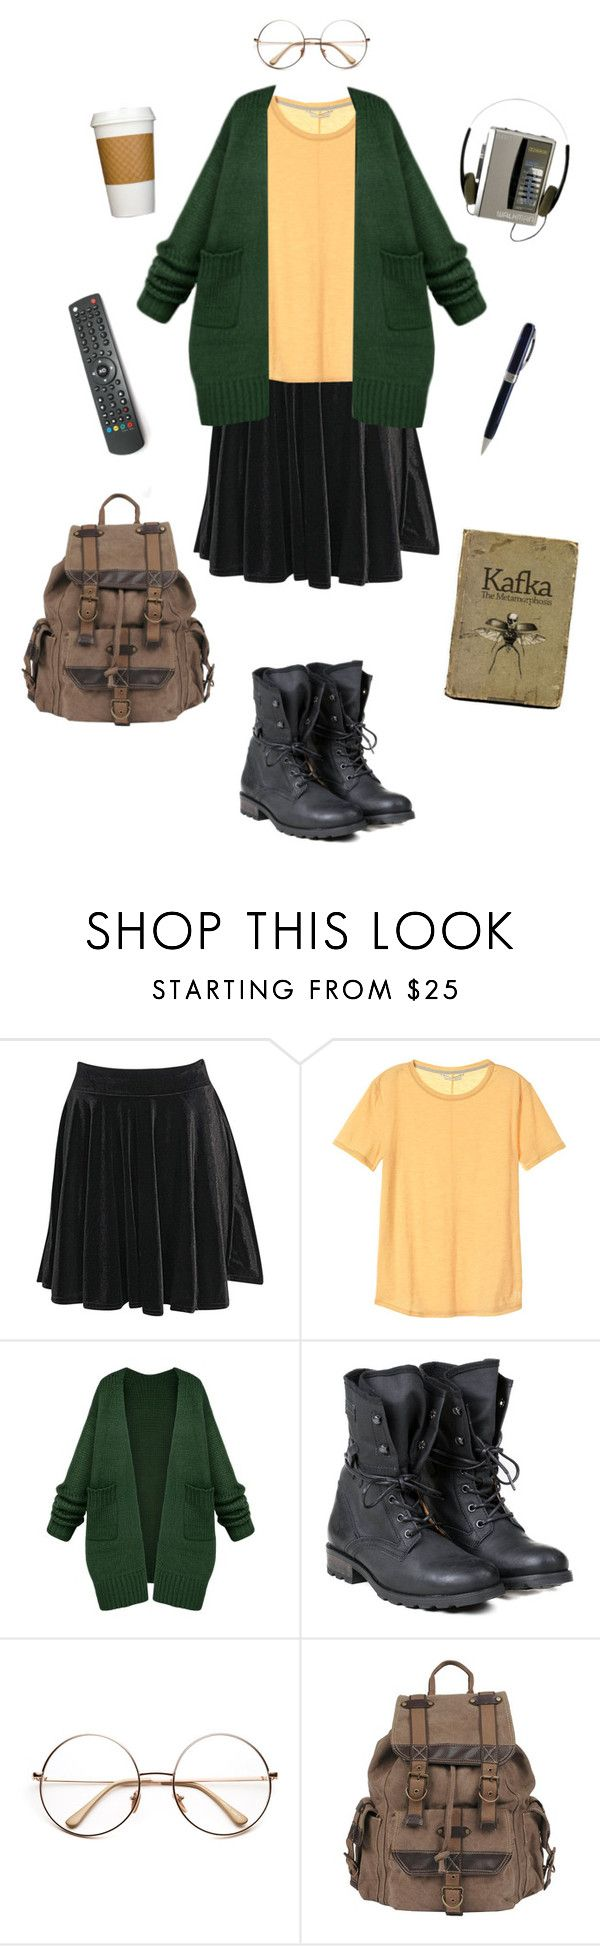 """""""Daria Morgendorffer-Daria"""" by conquistadorofsorts ❤ liked on Polyvore featuring Boohoo, PLDM by Palladium, Wilsons Leather and Visconti"""